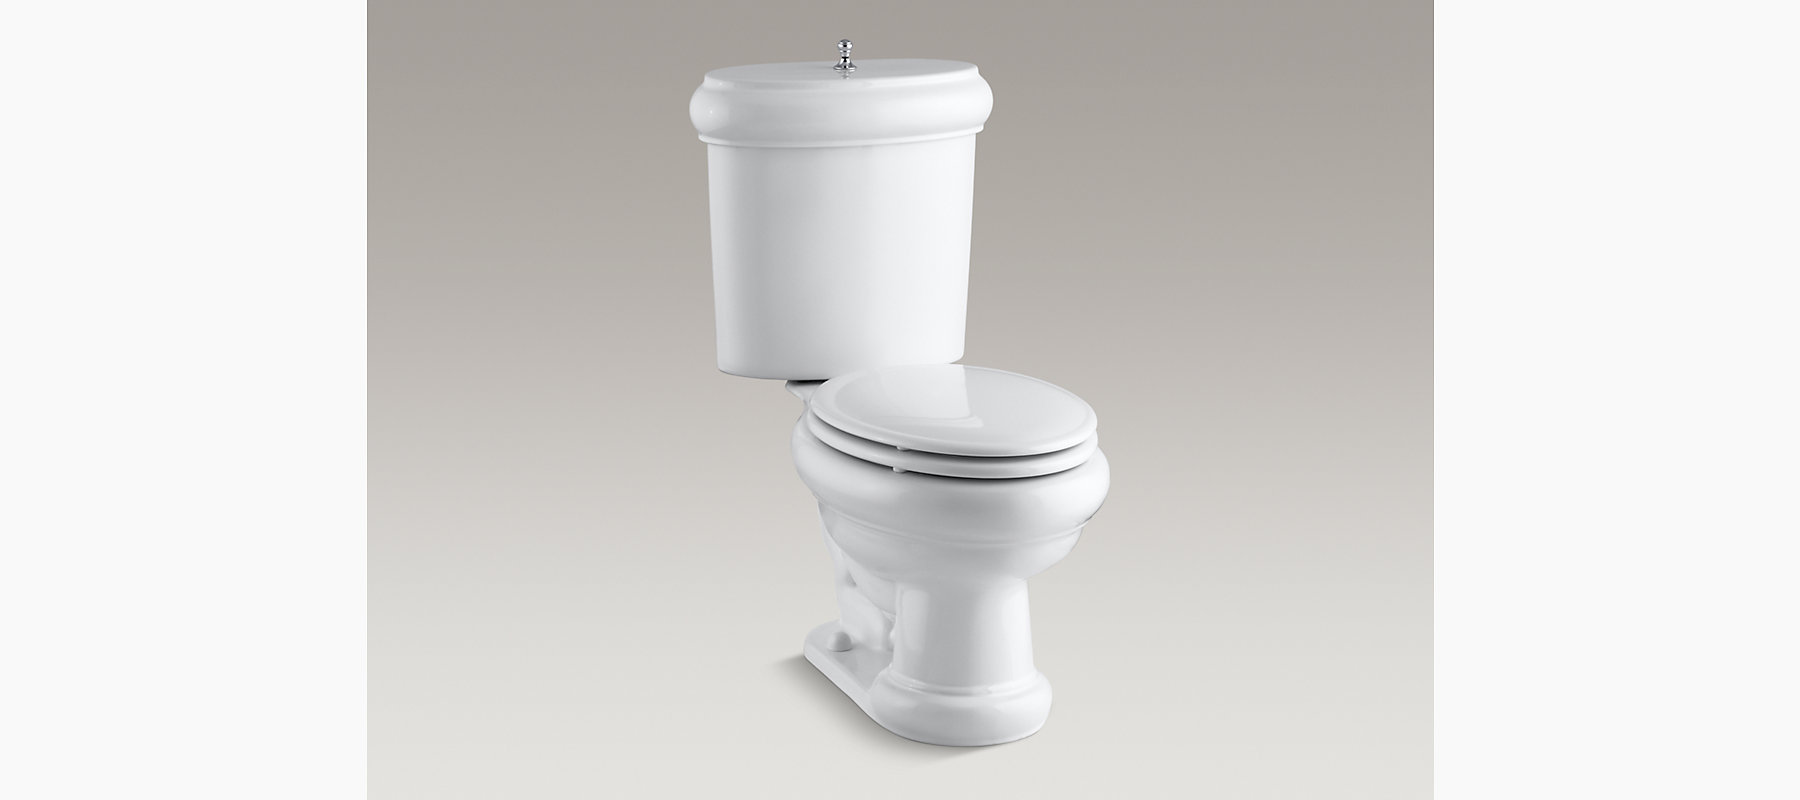 KOHLER|K-3555-U|Revival Elongated 1.6-GPF Toilet with Seat and ...